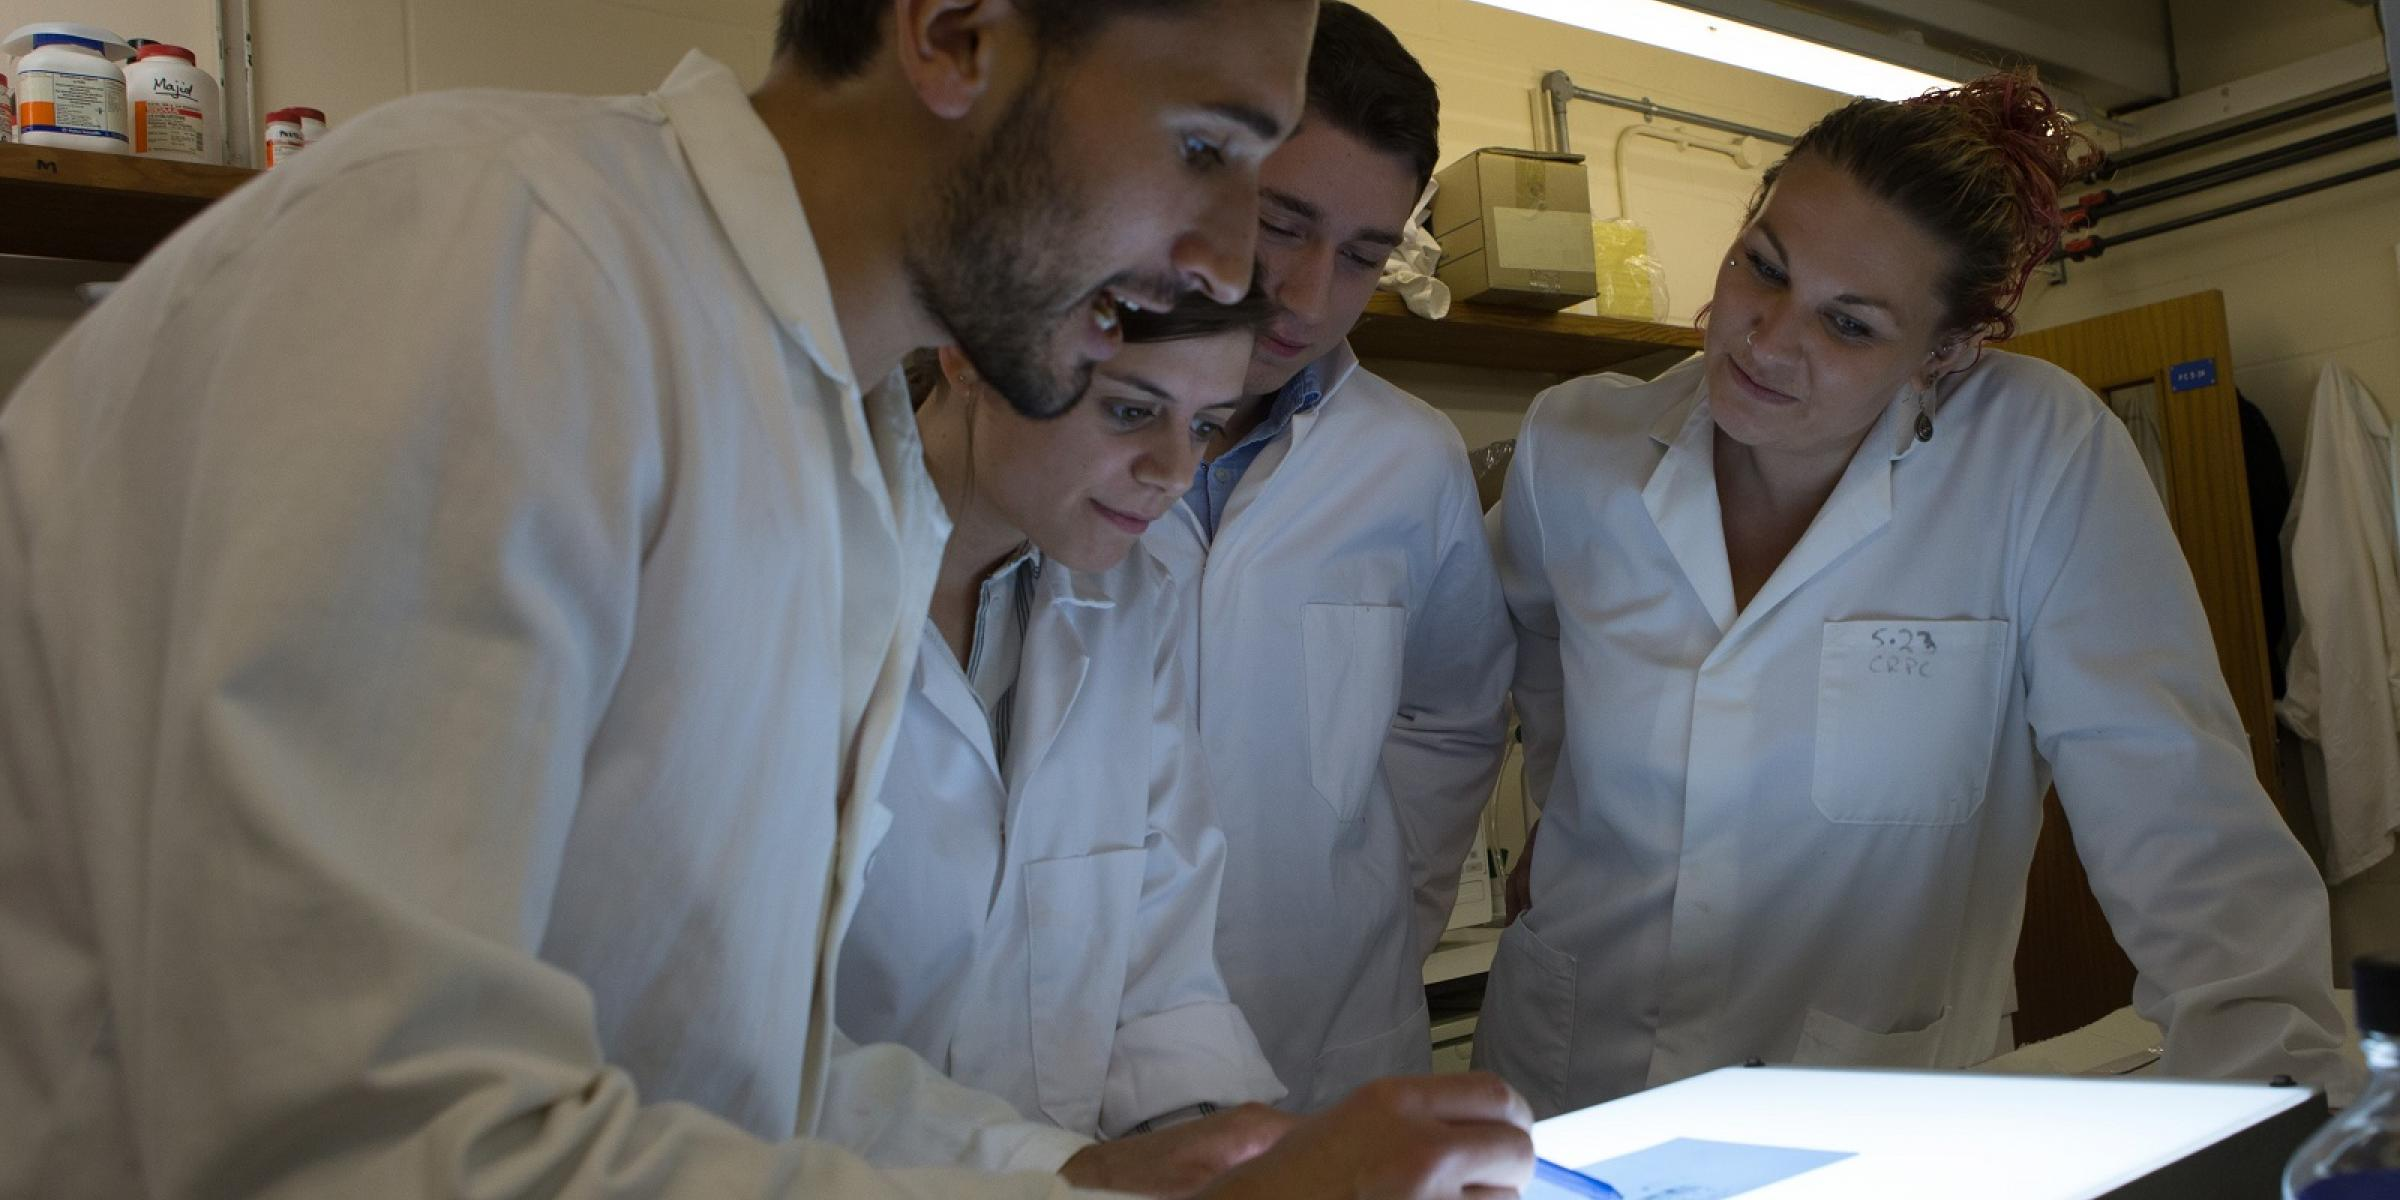 A group of researchers in the lab